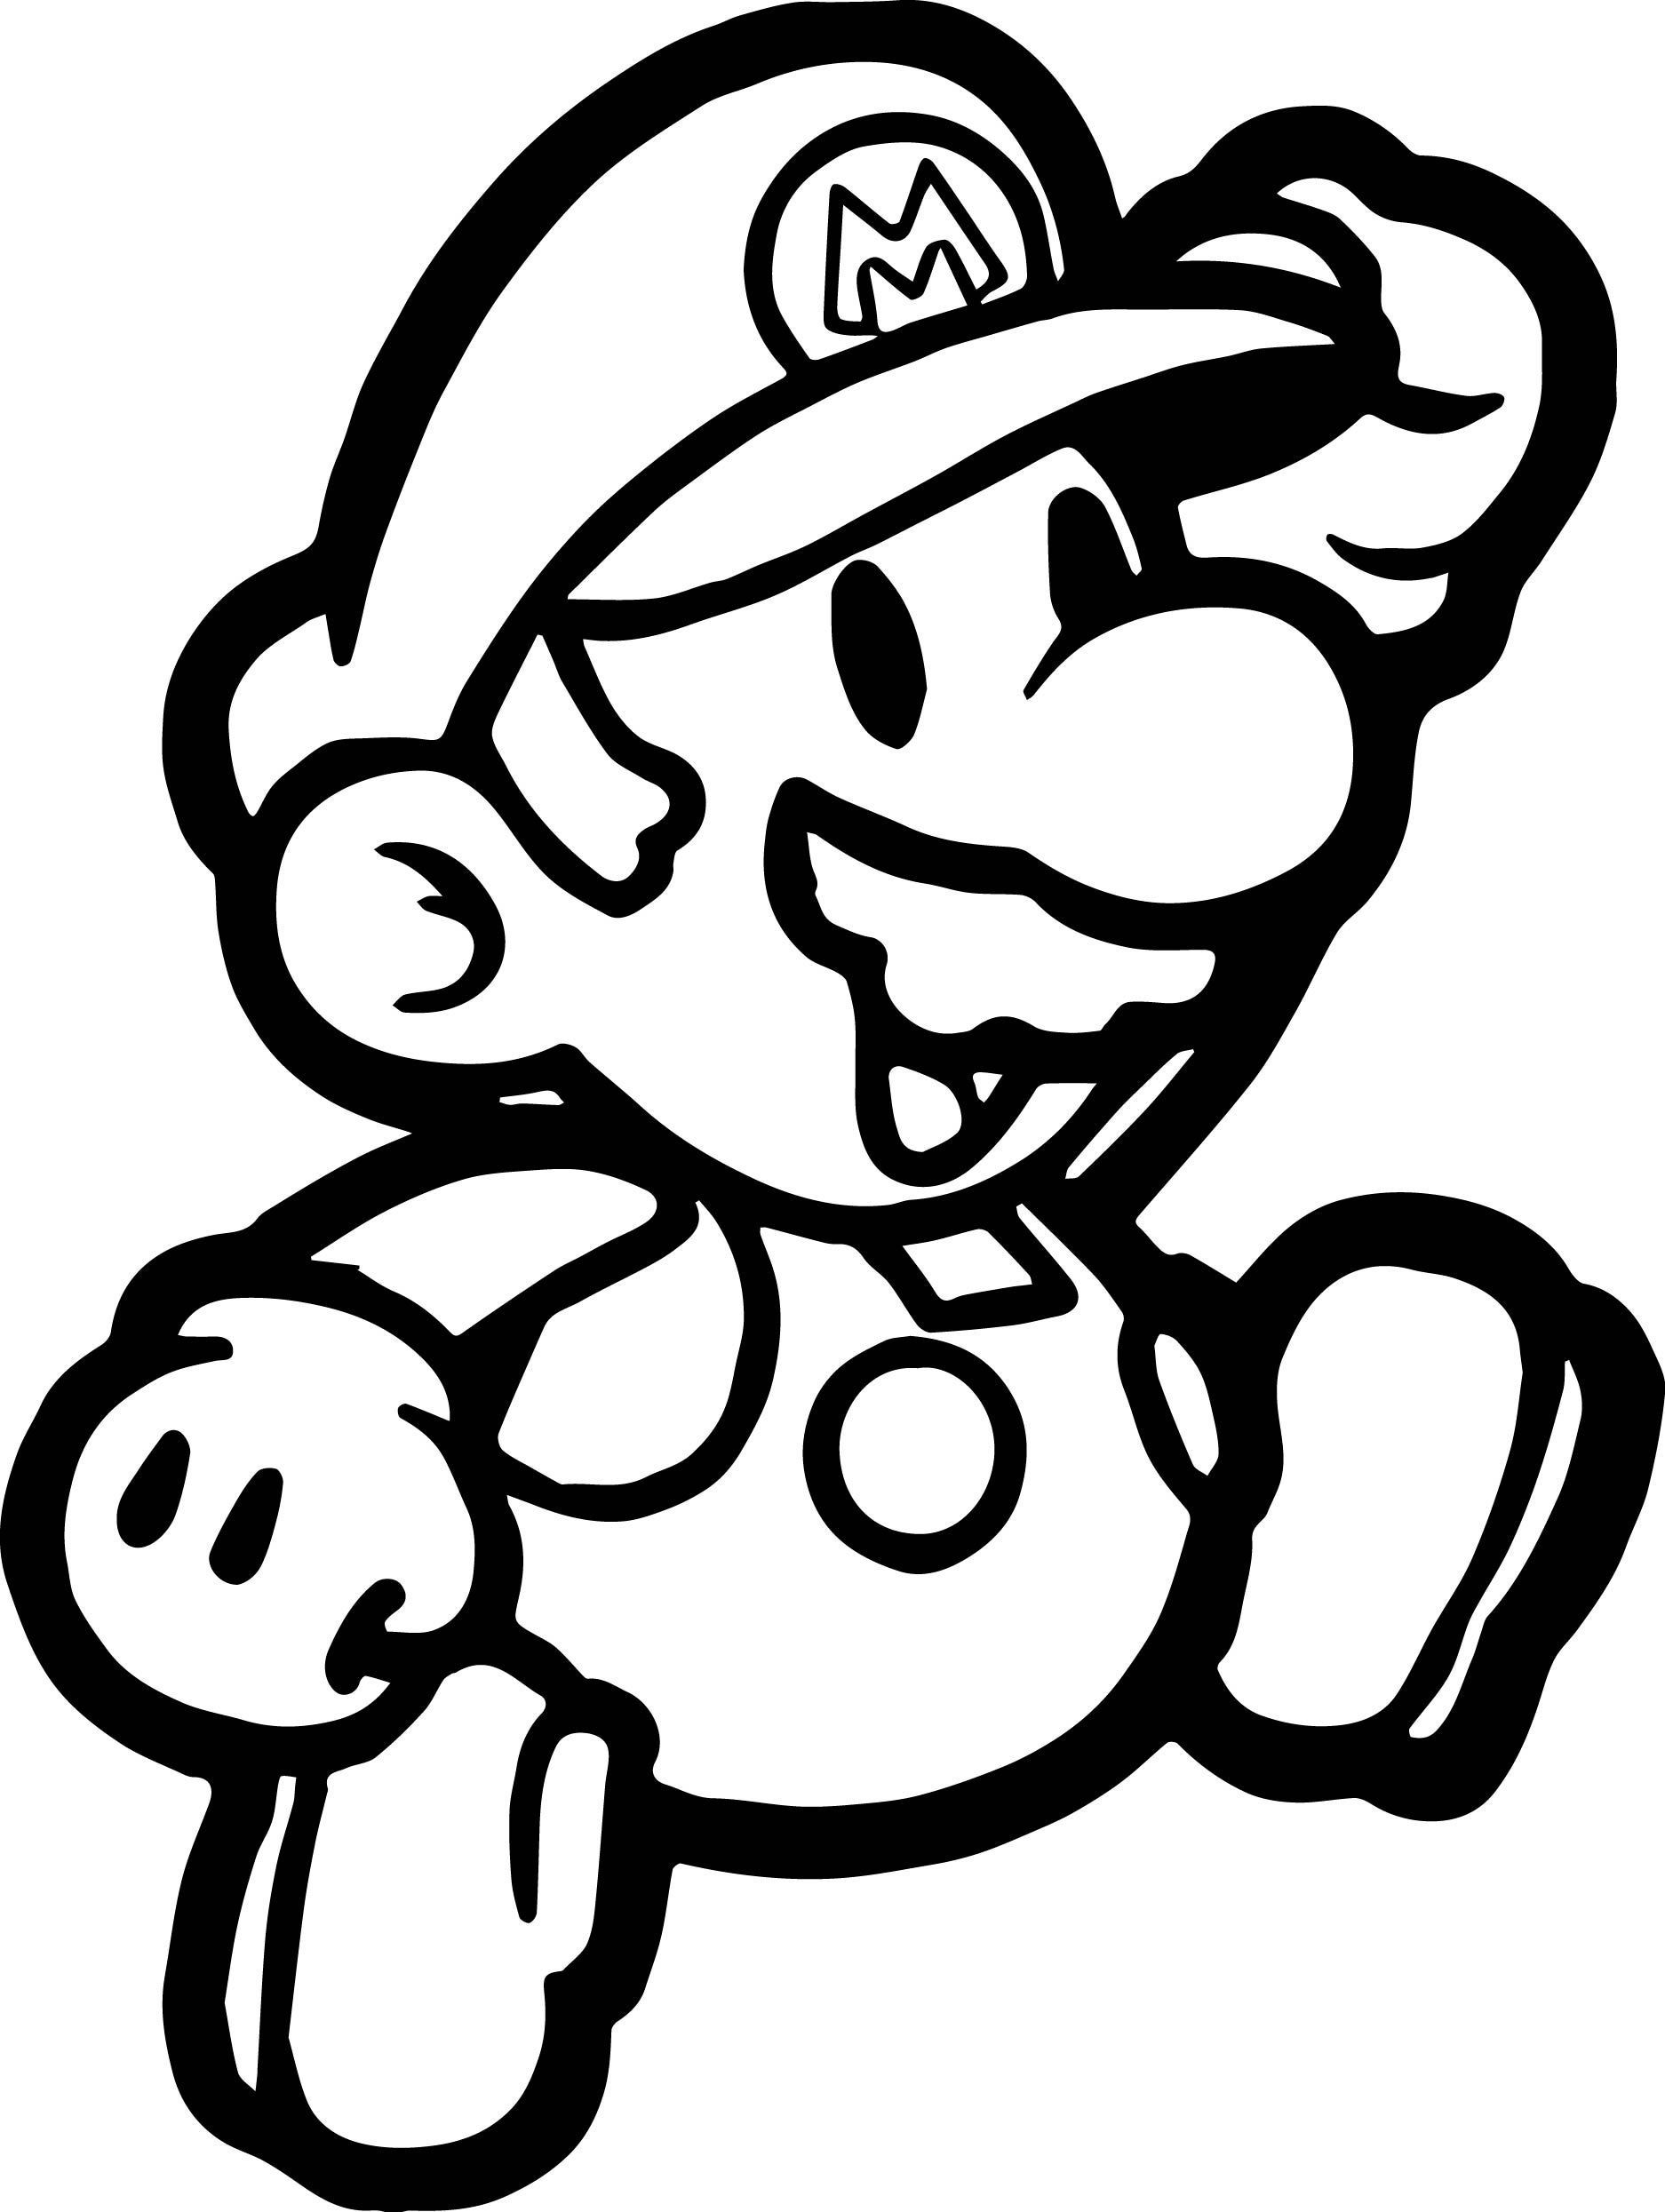 printable pictures of mario characters mario mario bros kids coloring pages printable of pictures mario characters